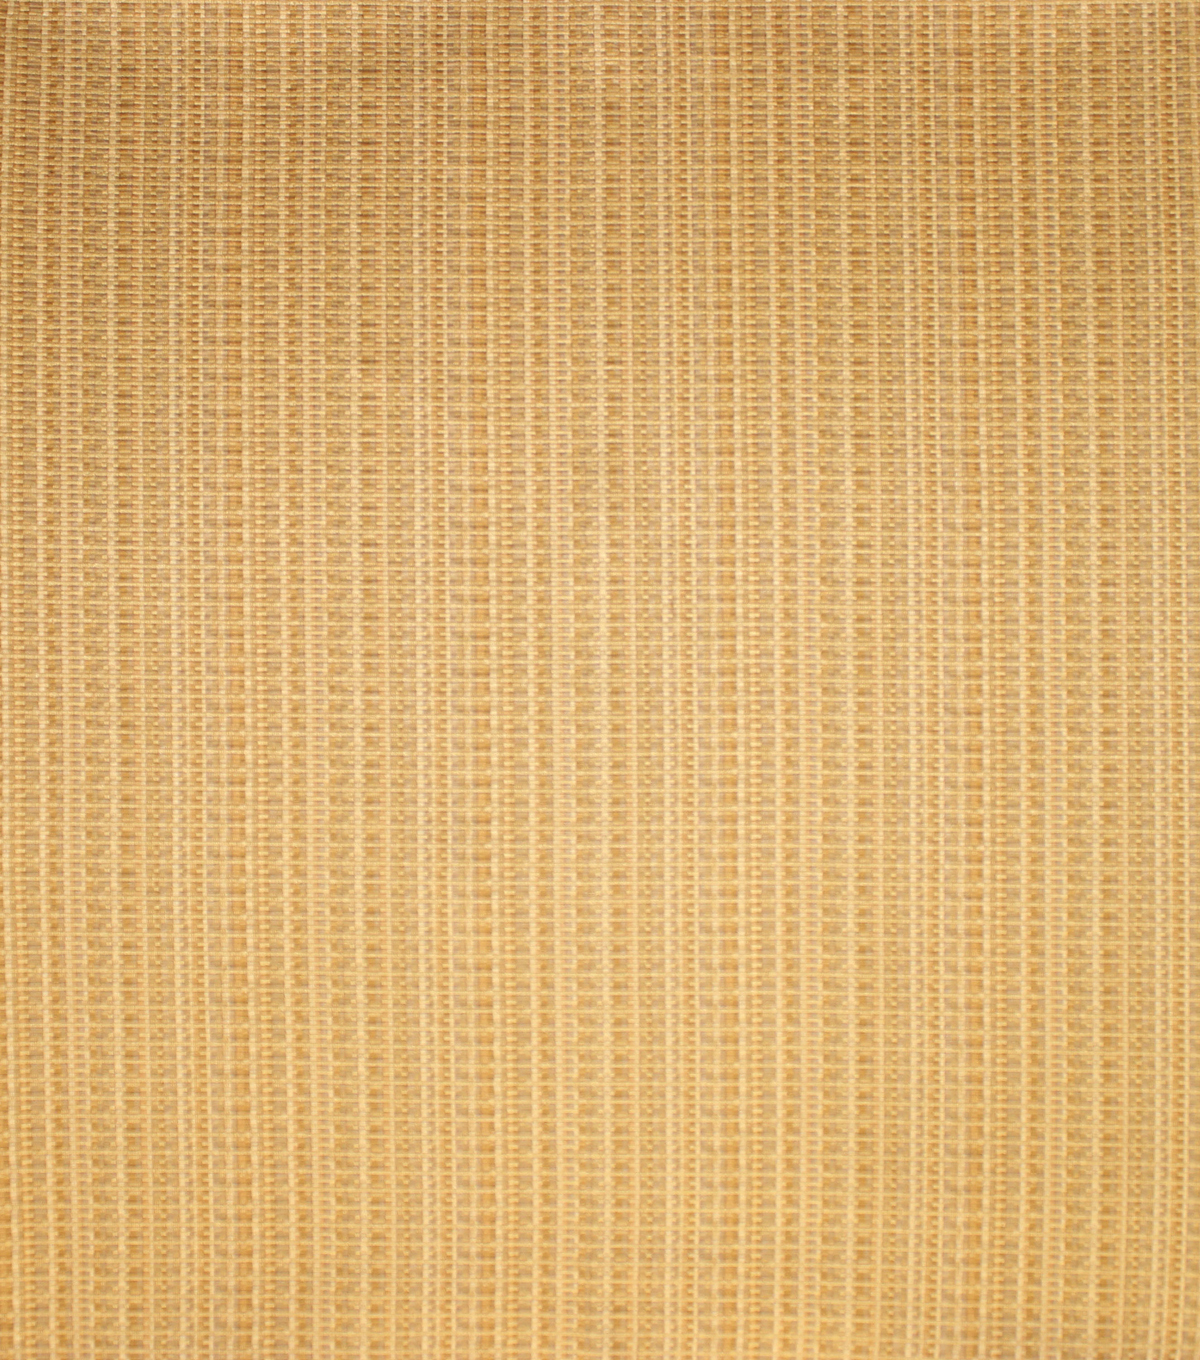 Home Decor 8\u0022x8\u0022 Fabric Swatch-Upholstery Fabric Barrow M8877-5822 Vanilla